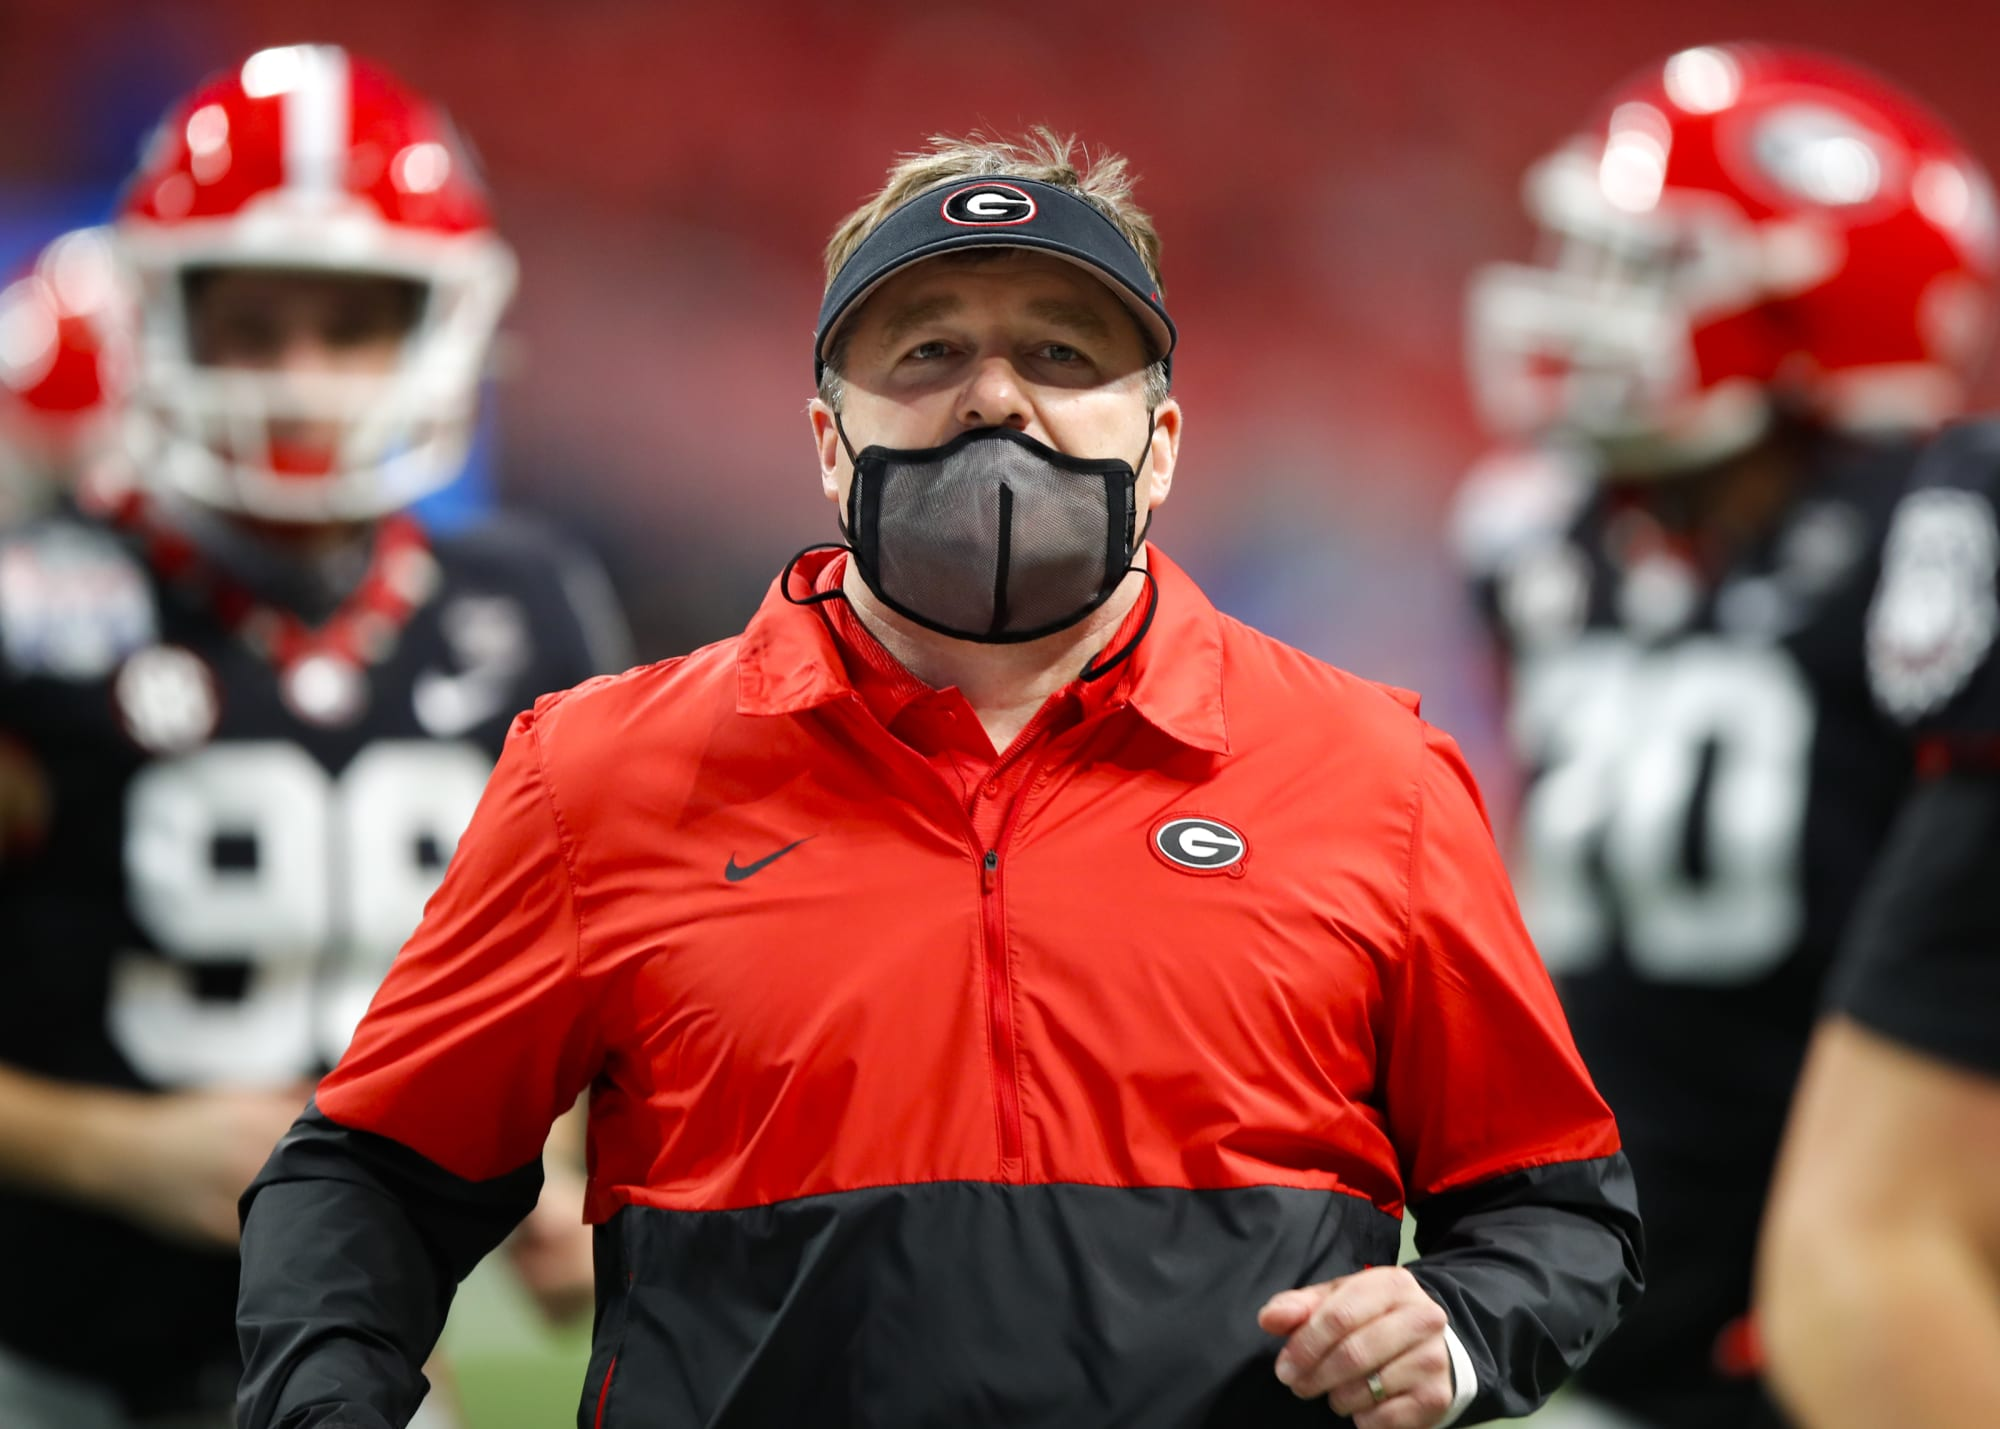 College Football Playoff National Championship chances: Georgia could be out if no growth thumbnail